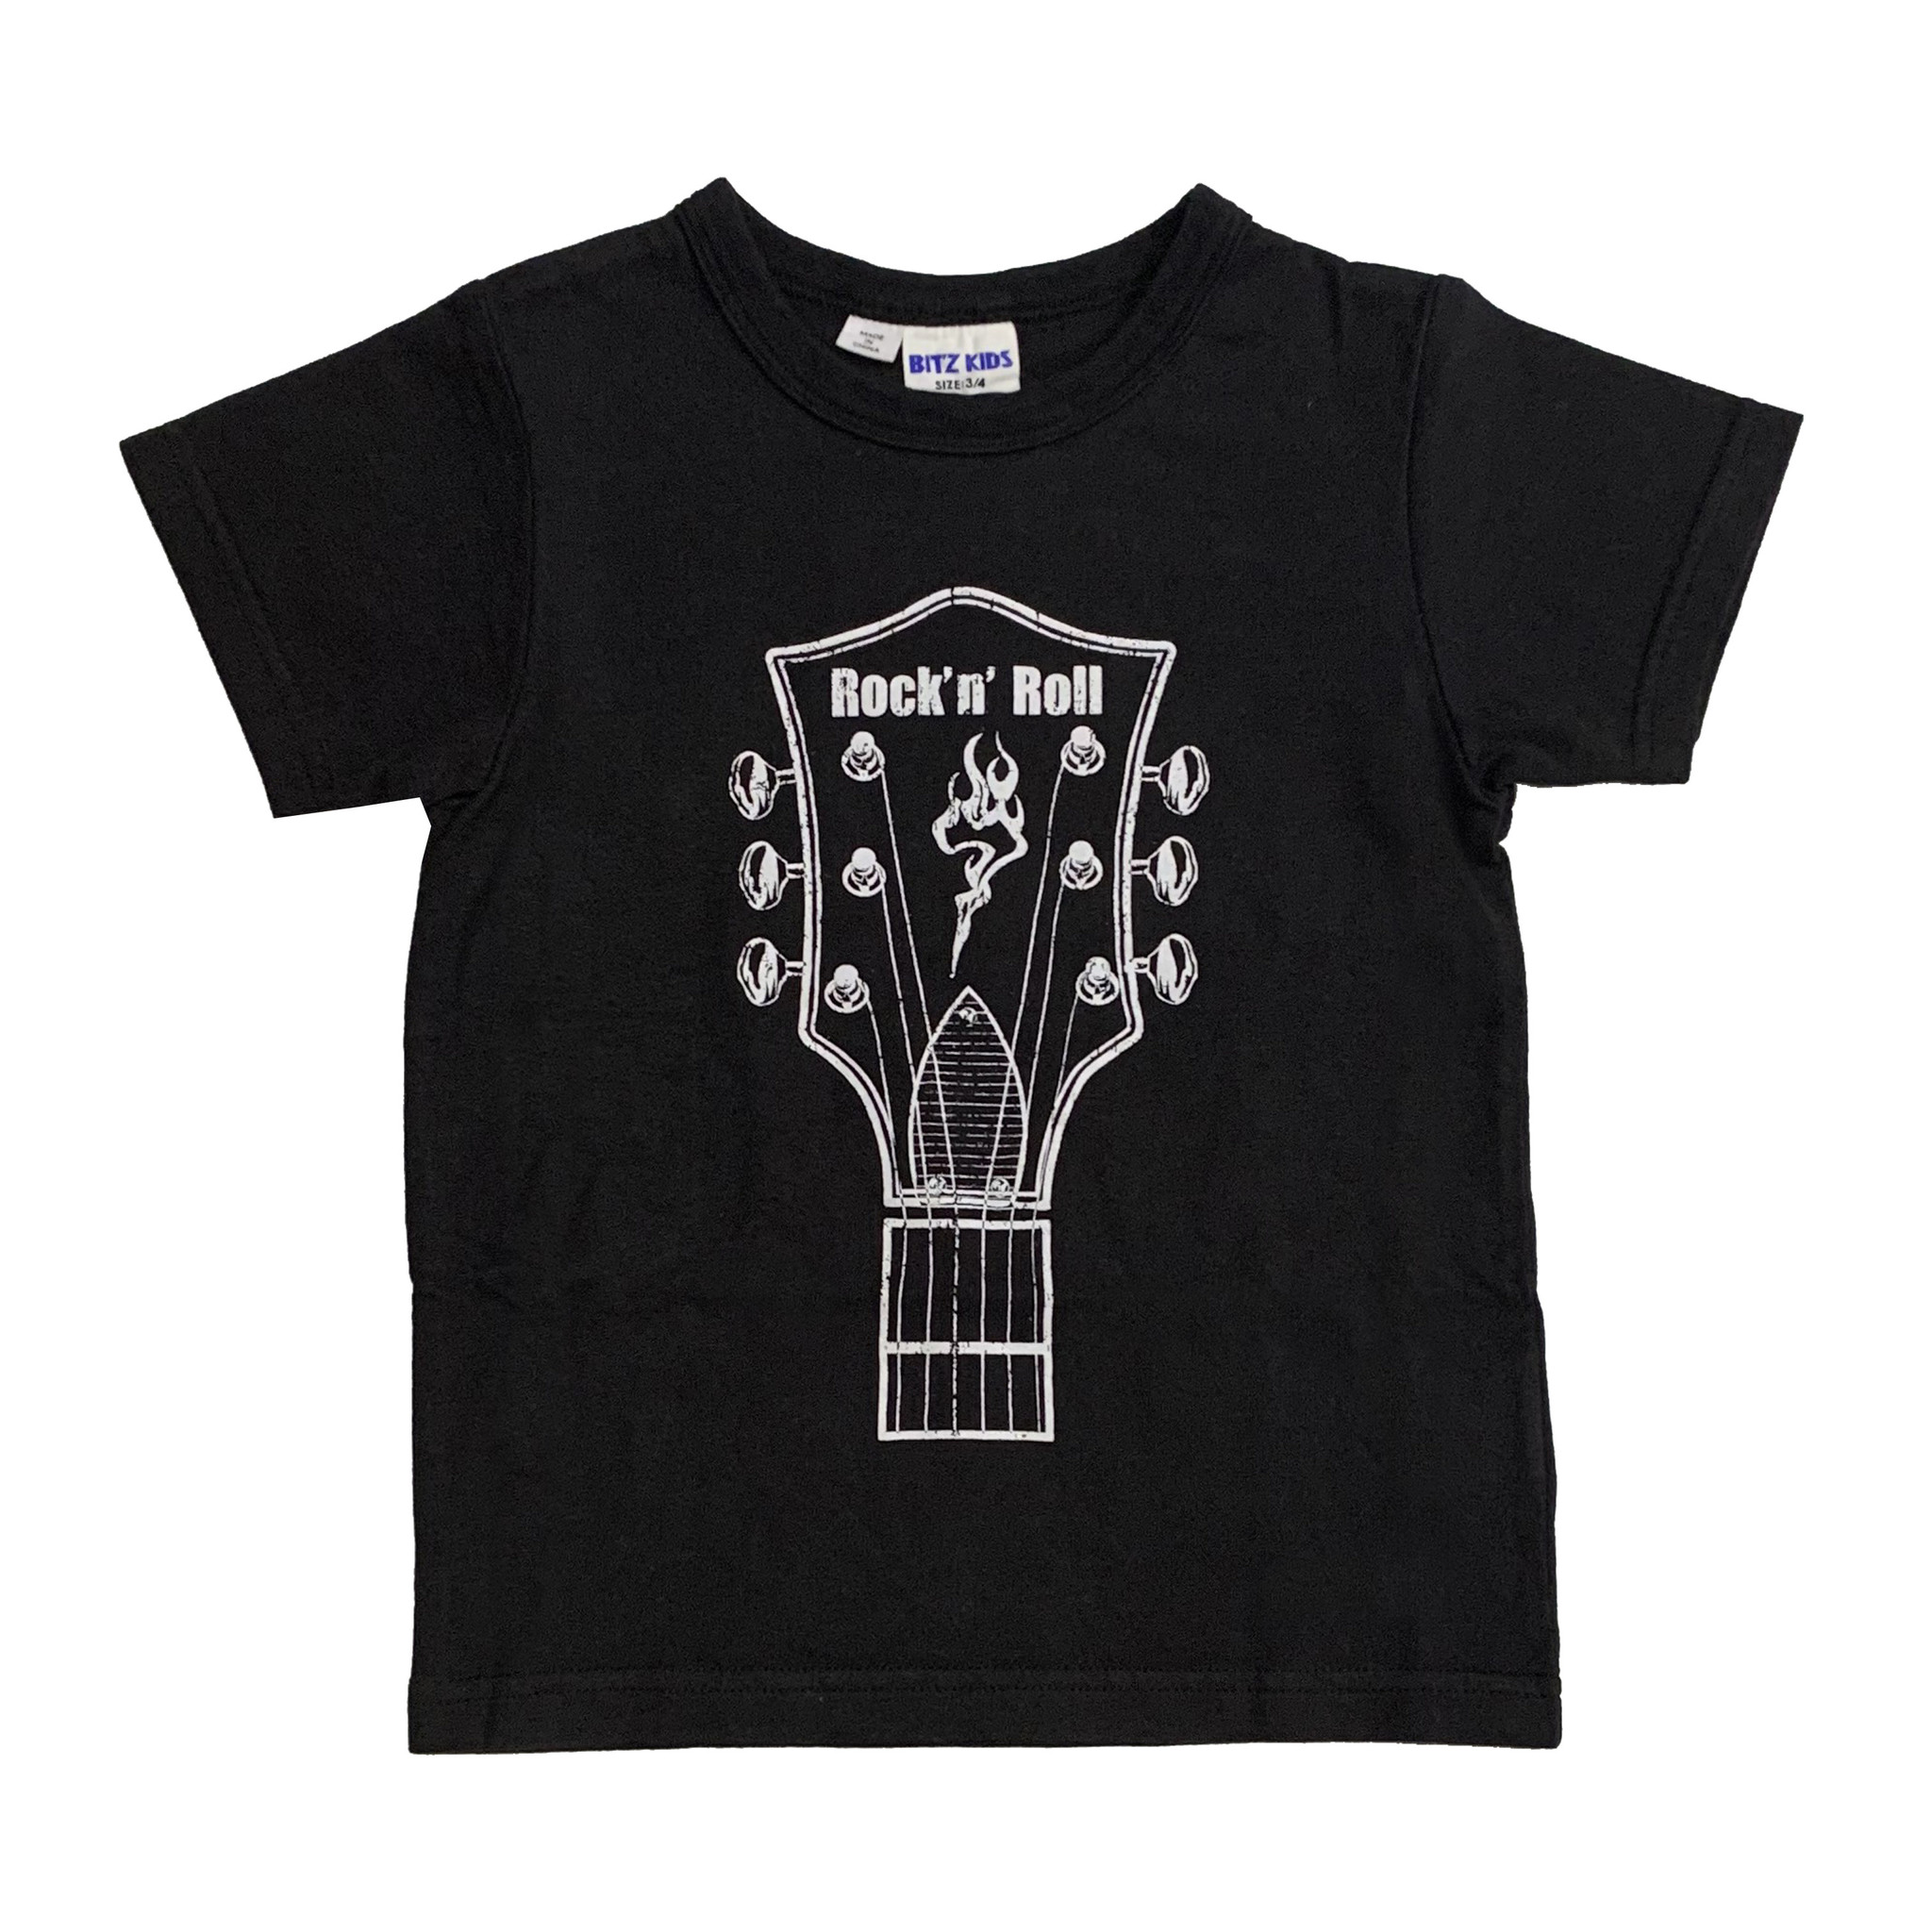 Bit'z Kids Rock n Roll Guitar Tee